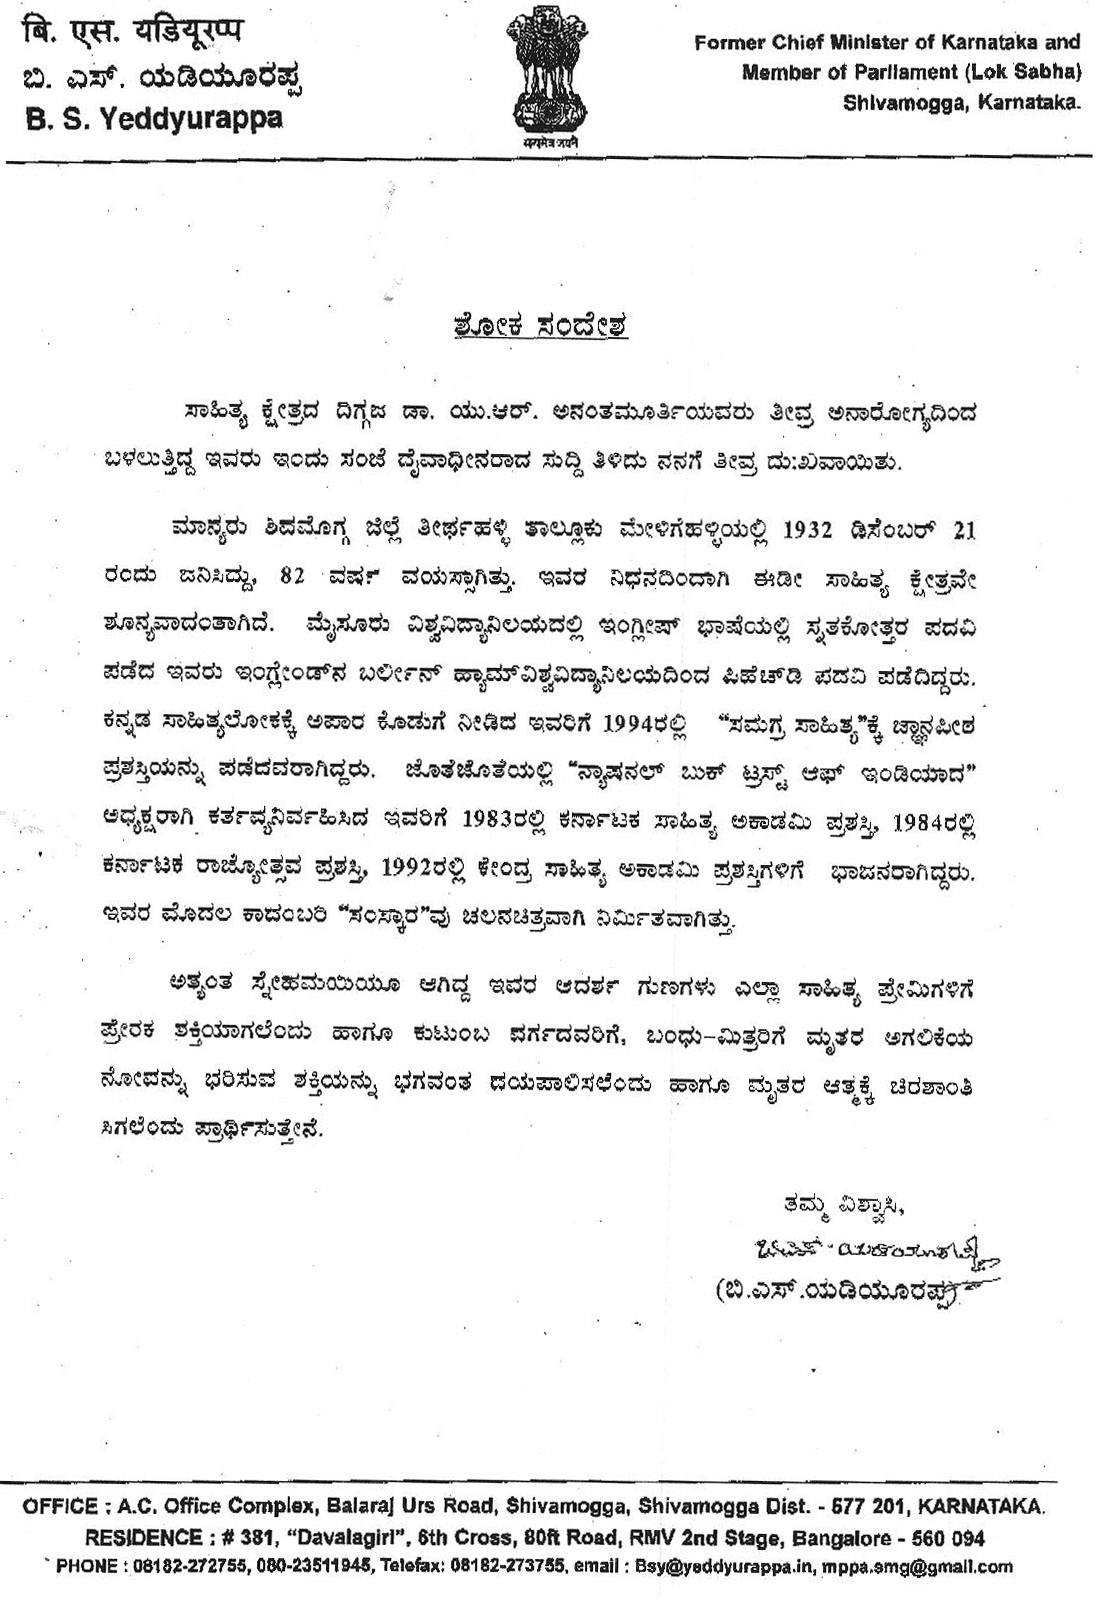 condolence message by BSY Hon'ble MP - UR Ananth Murthy